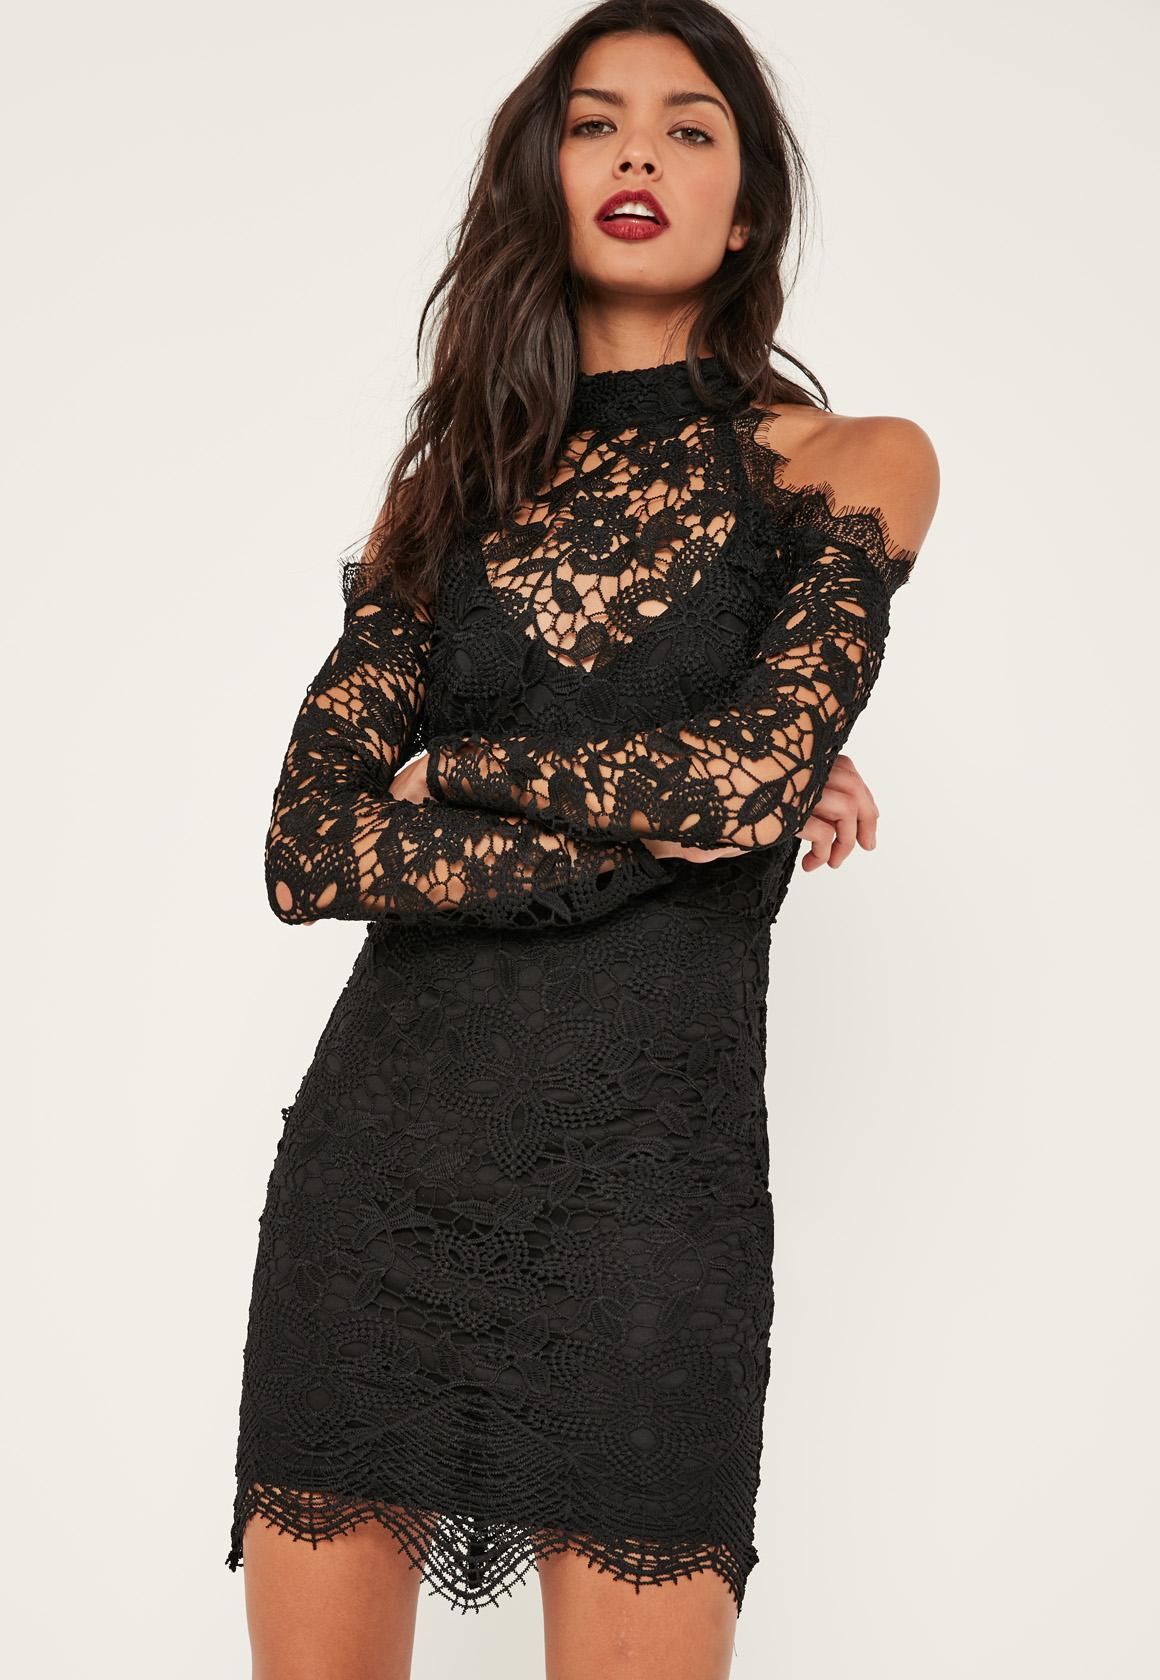 Black dress next - Black Cold Shoulder Lace Bodycon Dress 76 00 Previous Next